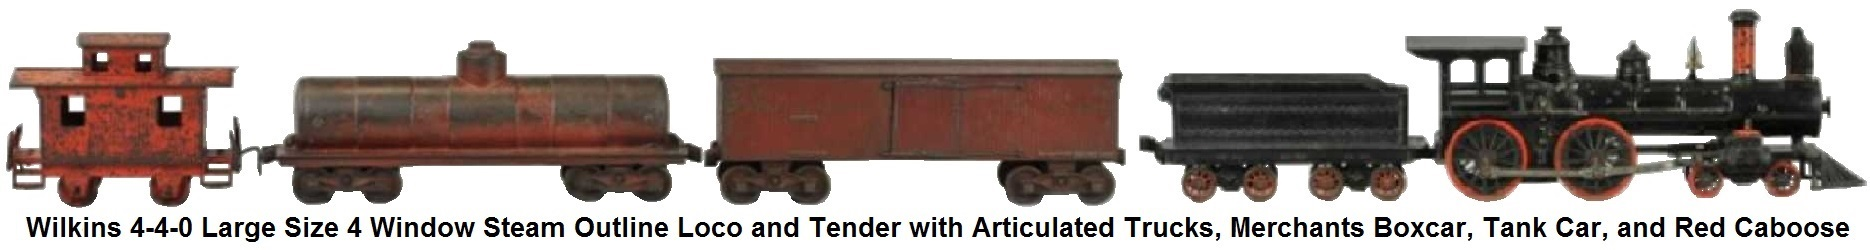 Wilkens 4-4-0 large size four window cab and tender with articulated trucks together with, tank car, merchants box car and red caboose